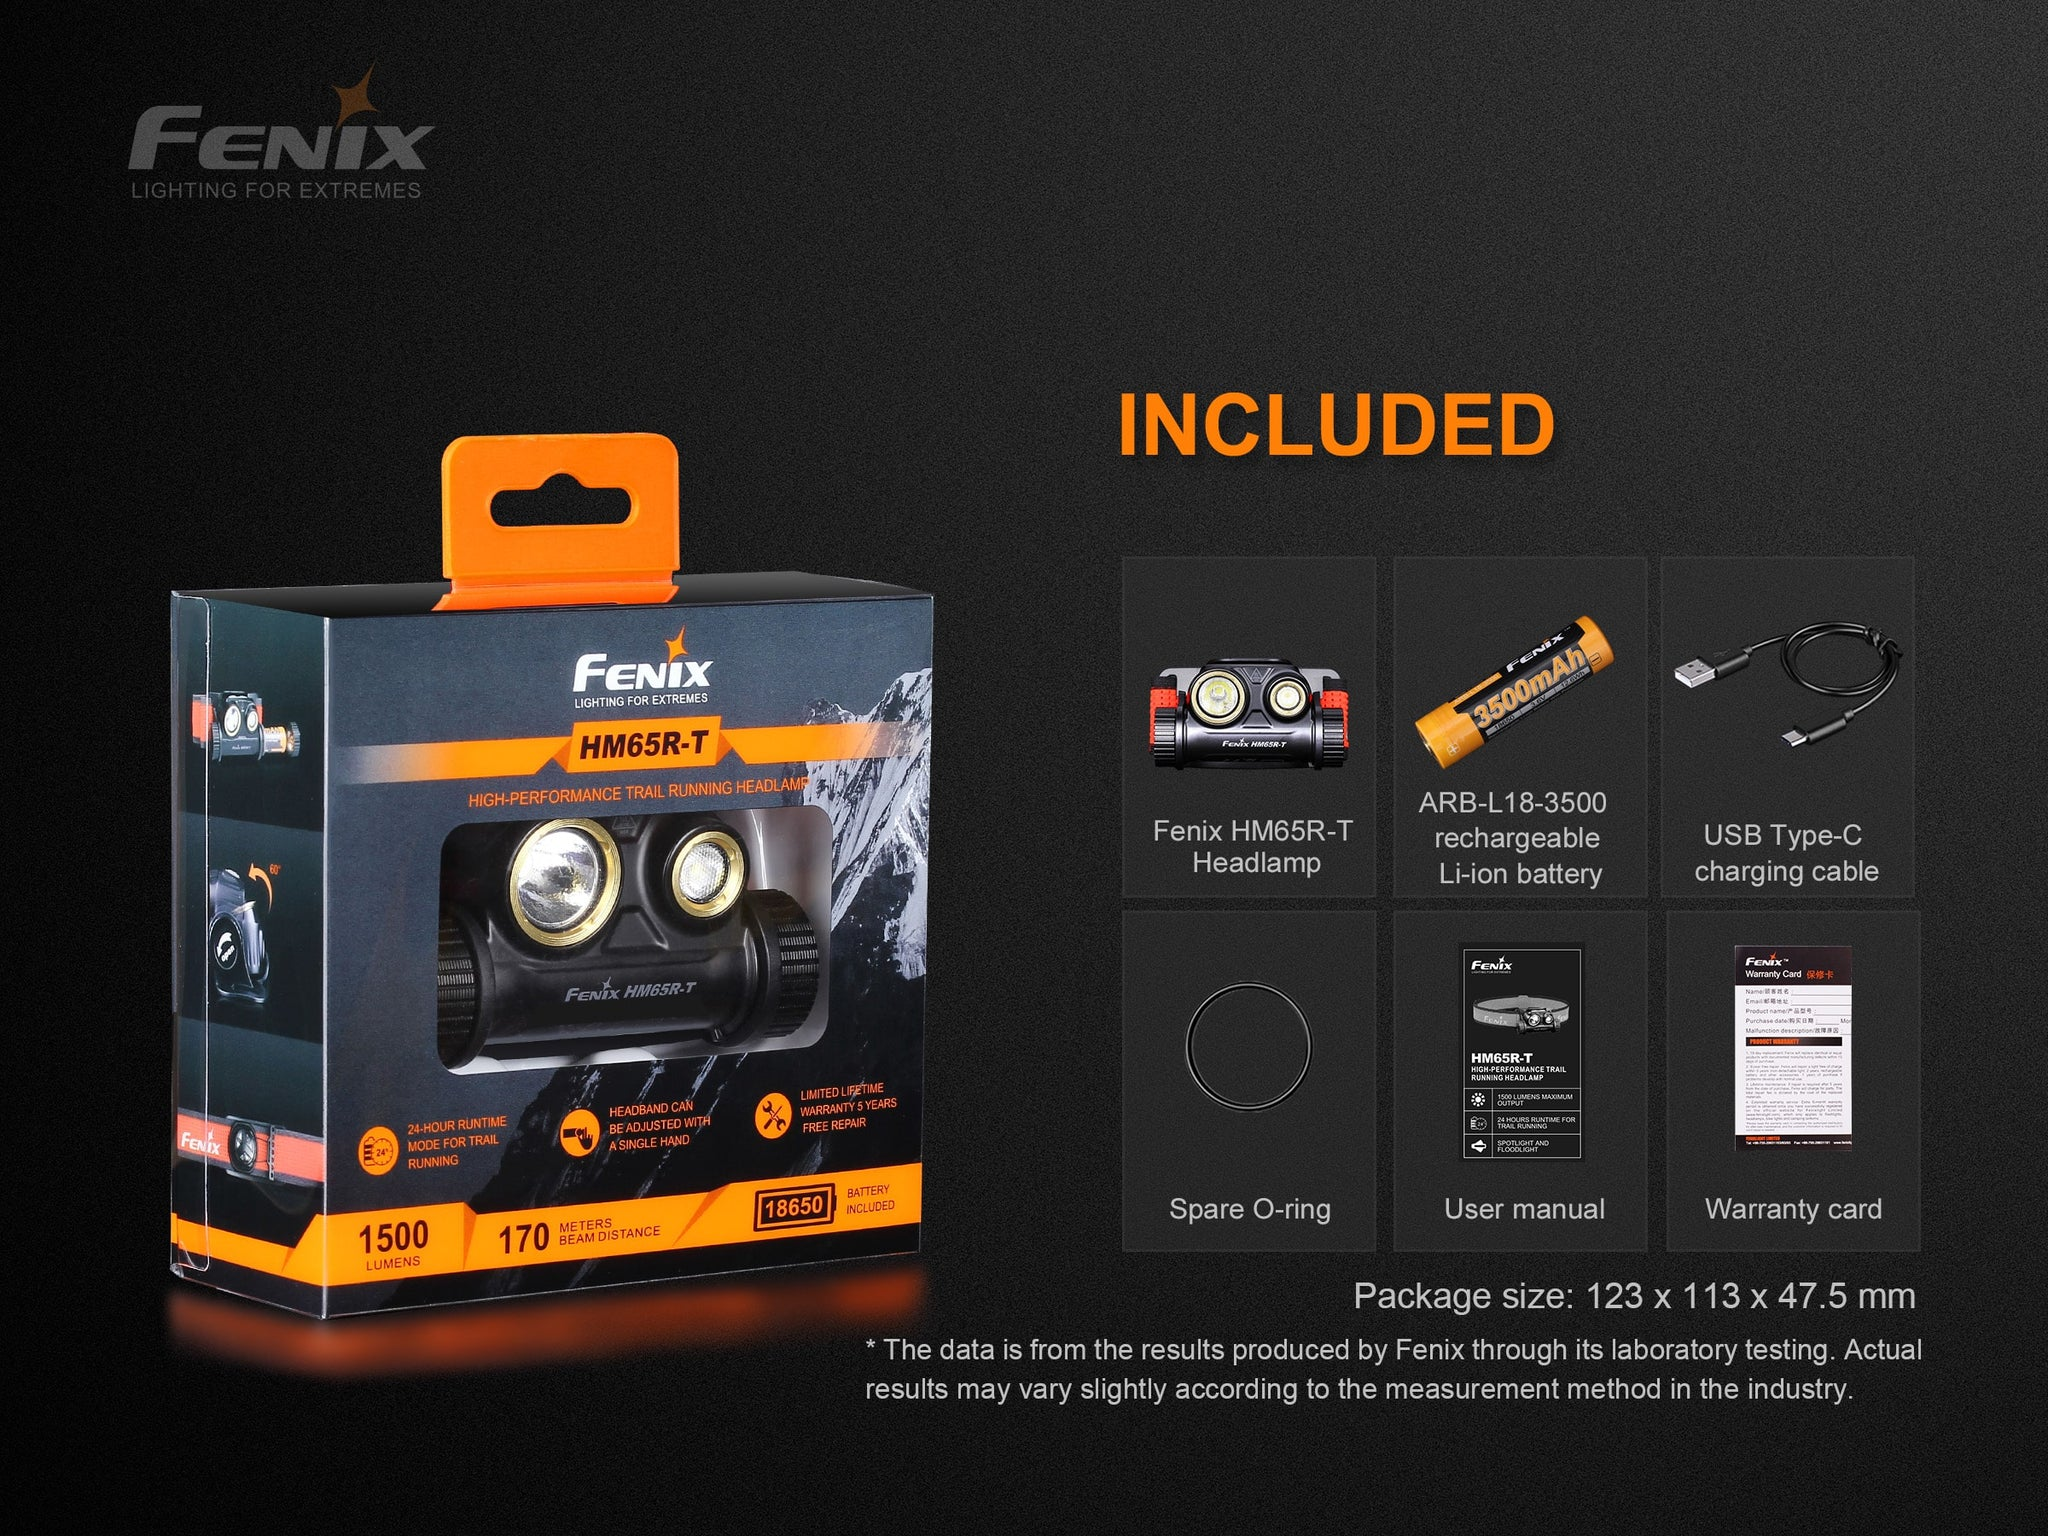 Fenix HM65R T LED Rechargeable Headlamp, Perfect outdoor 1500 Lumens Powerful Lightweight Head Torch for Outdoors, Running, Trails with Spot and Flood Light